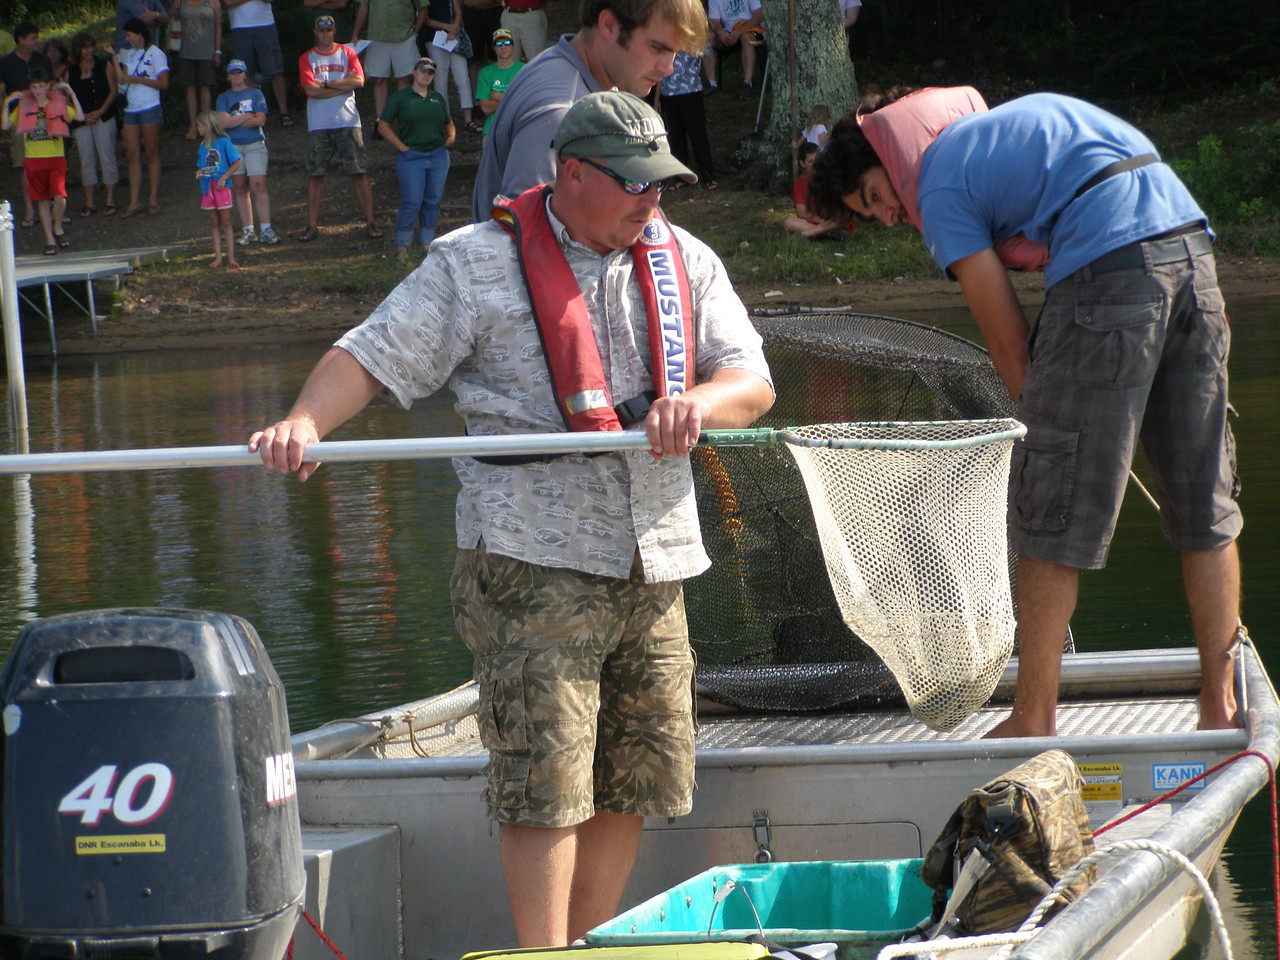 Greg Sass deposits one of the fish into a tub so folks on shore can get a closer look.